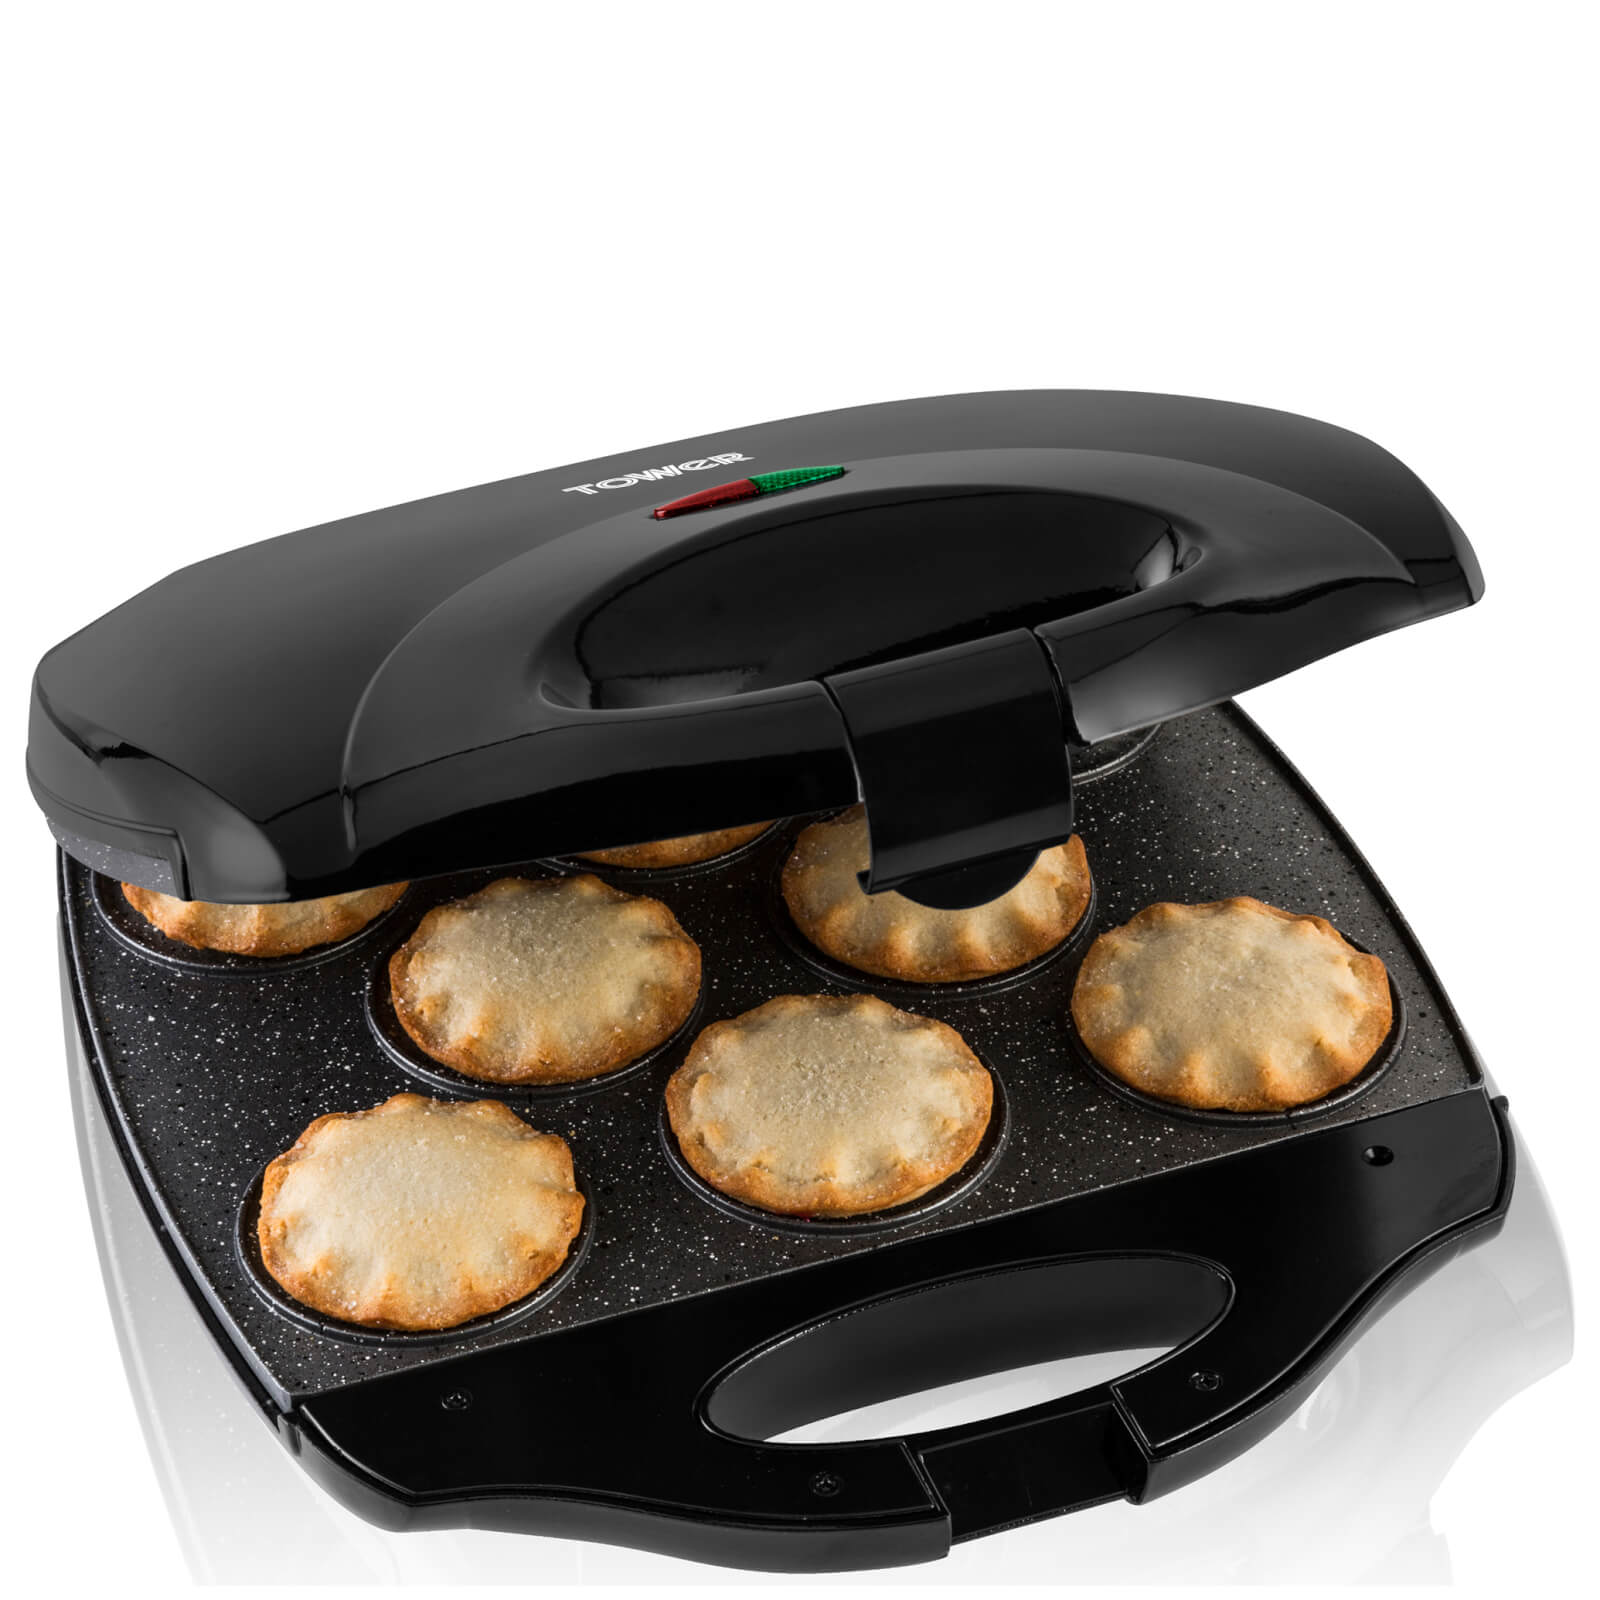 Tower 8 Mince Pie Maker - Black